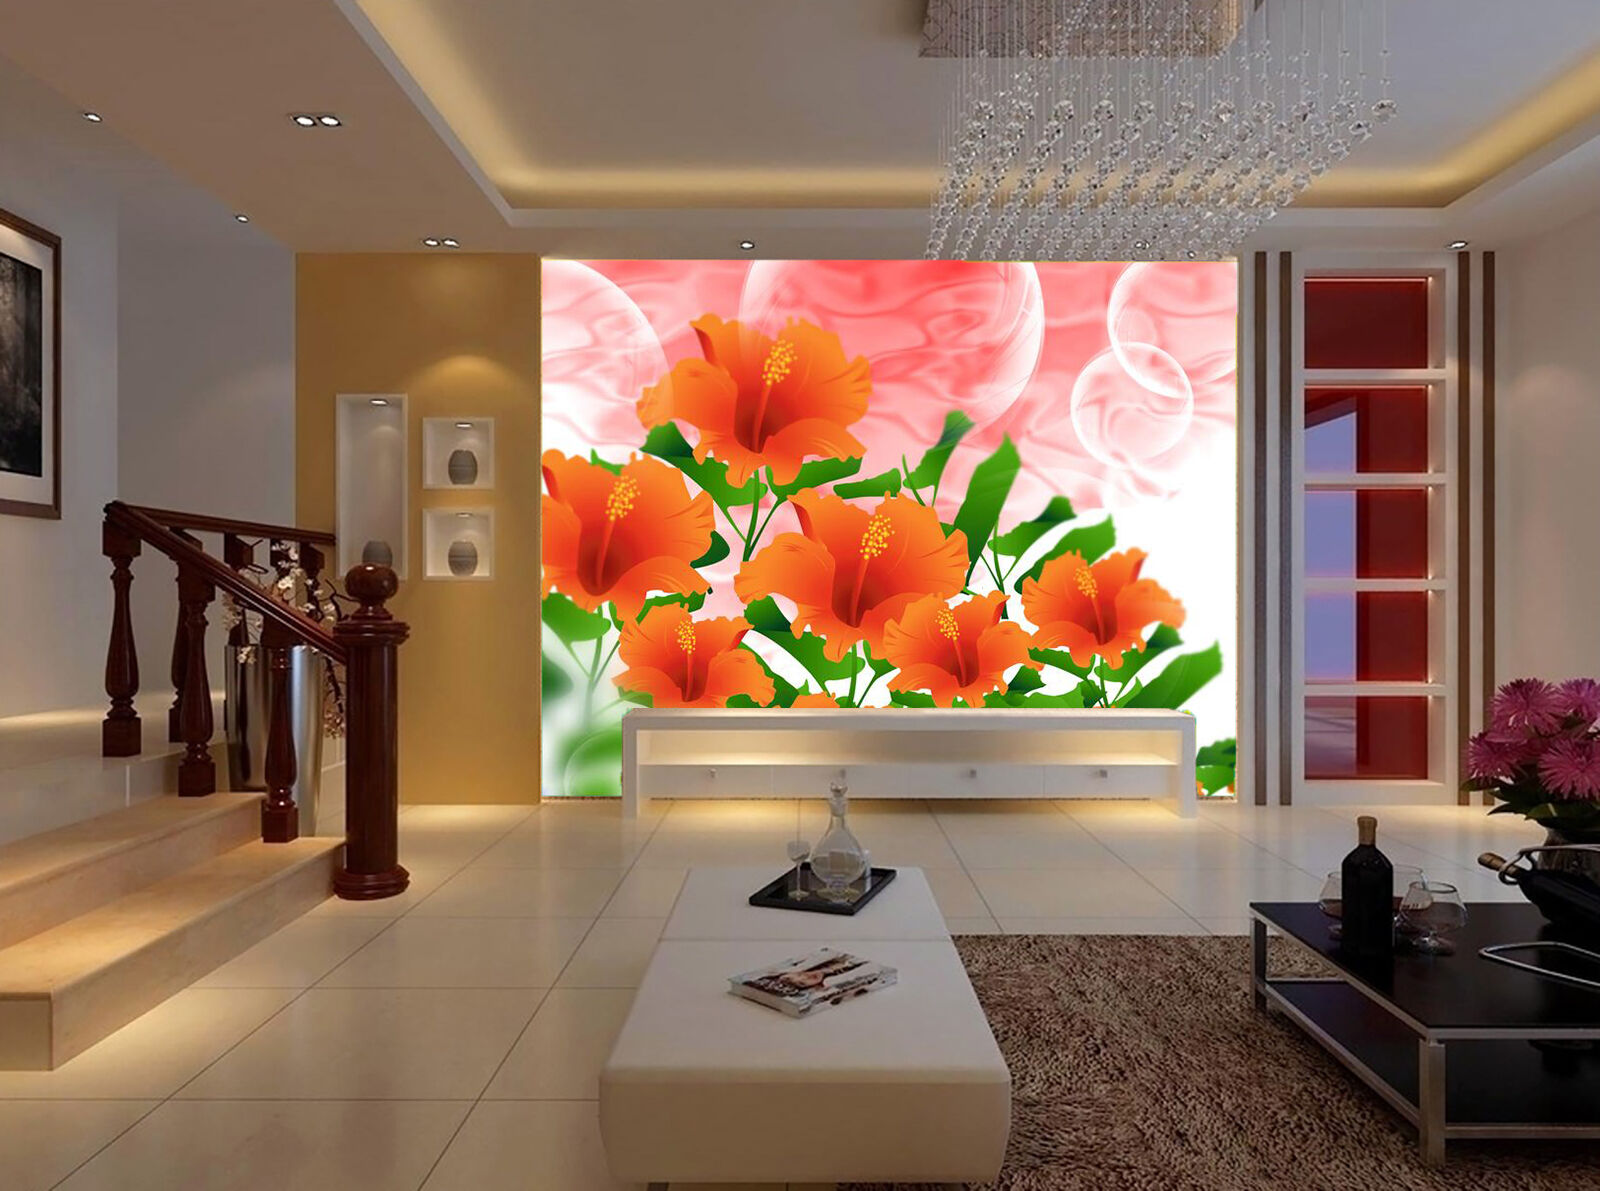 3D Flowers bloom ROT large Wall Paper Print Decal Wall Deco Indoor wall Mural